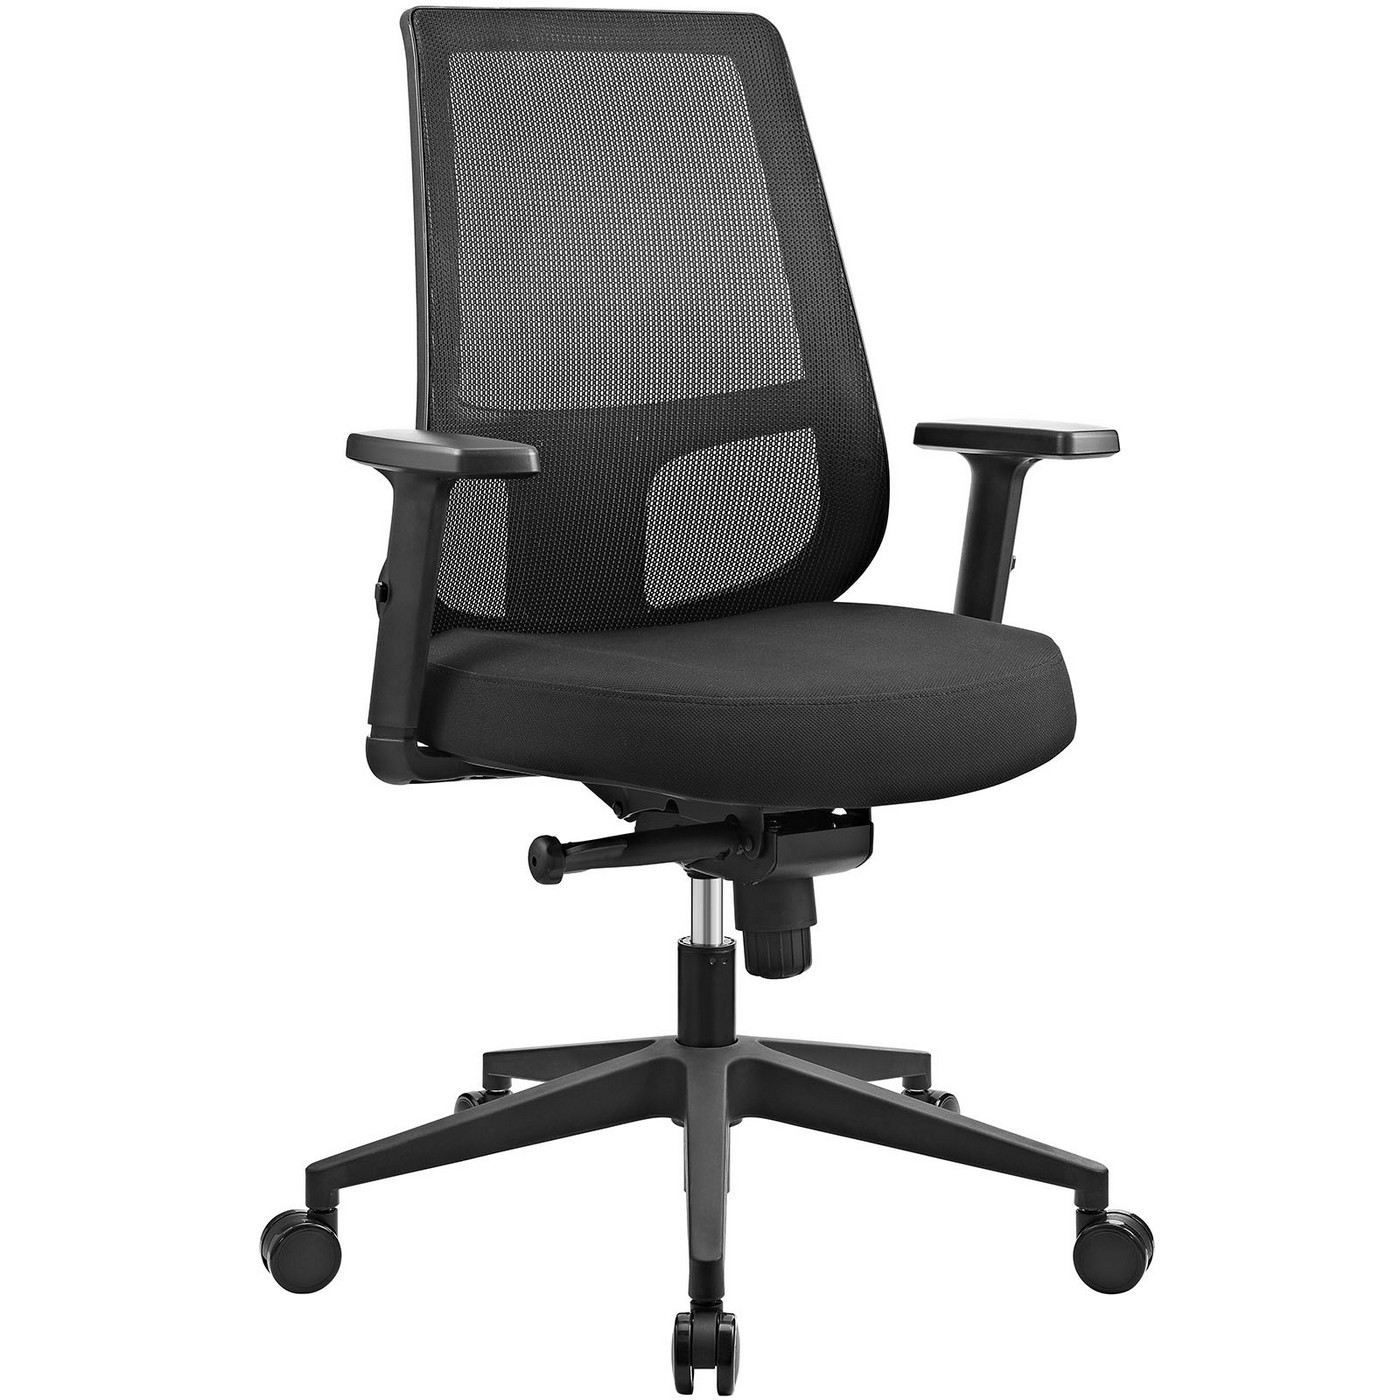 Best ideas about Office Chair Lumbar Support . Save or Pin Pump Ergonomic Mesh Back fice Chair With Lumbar Support Now.